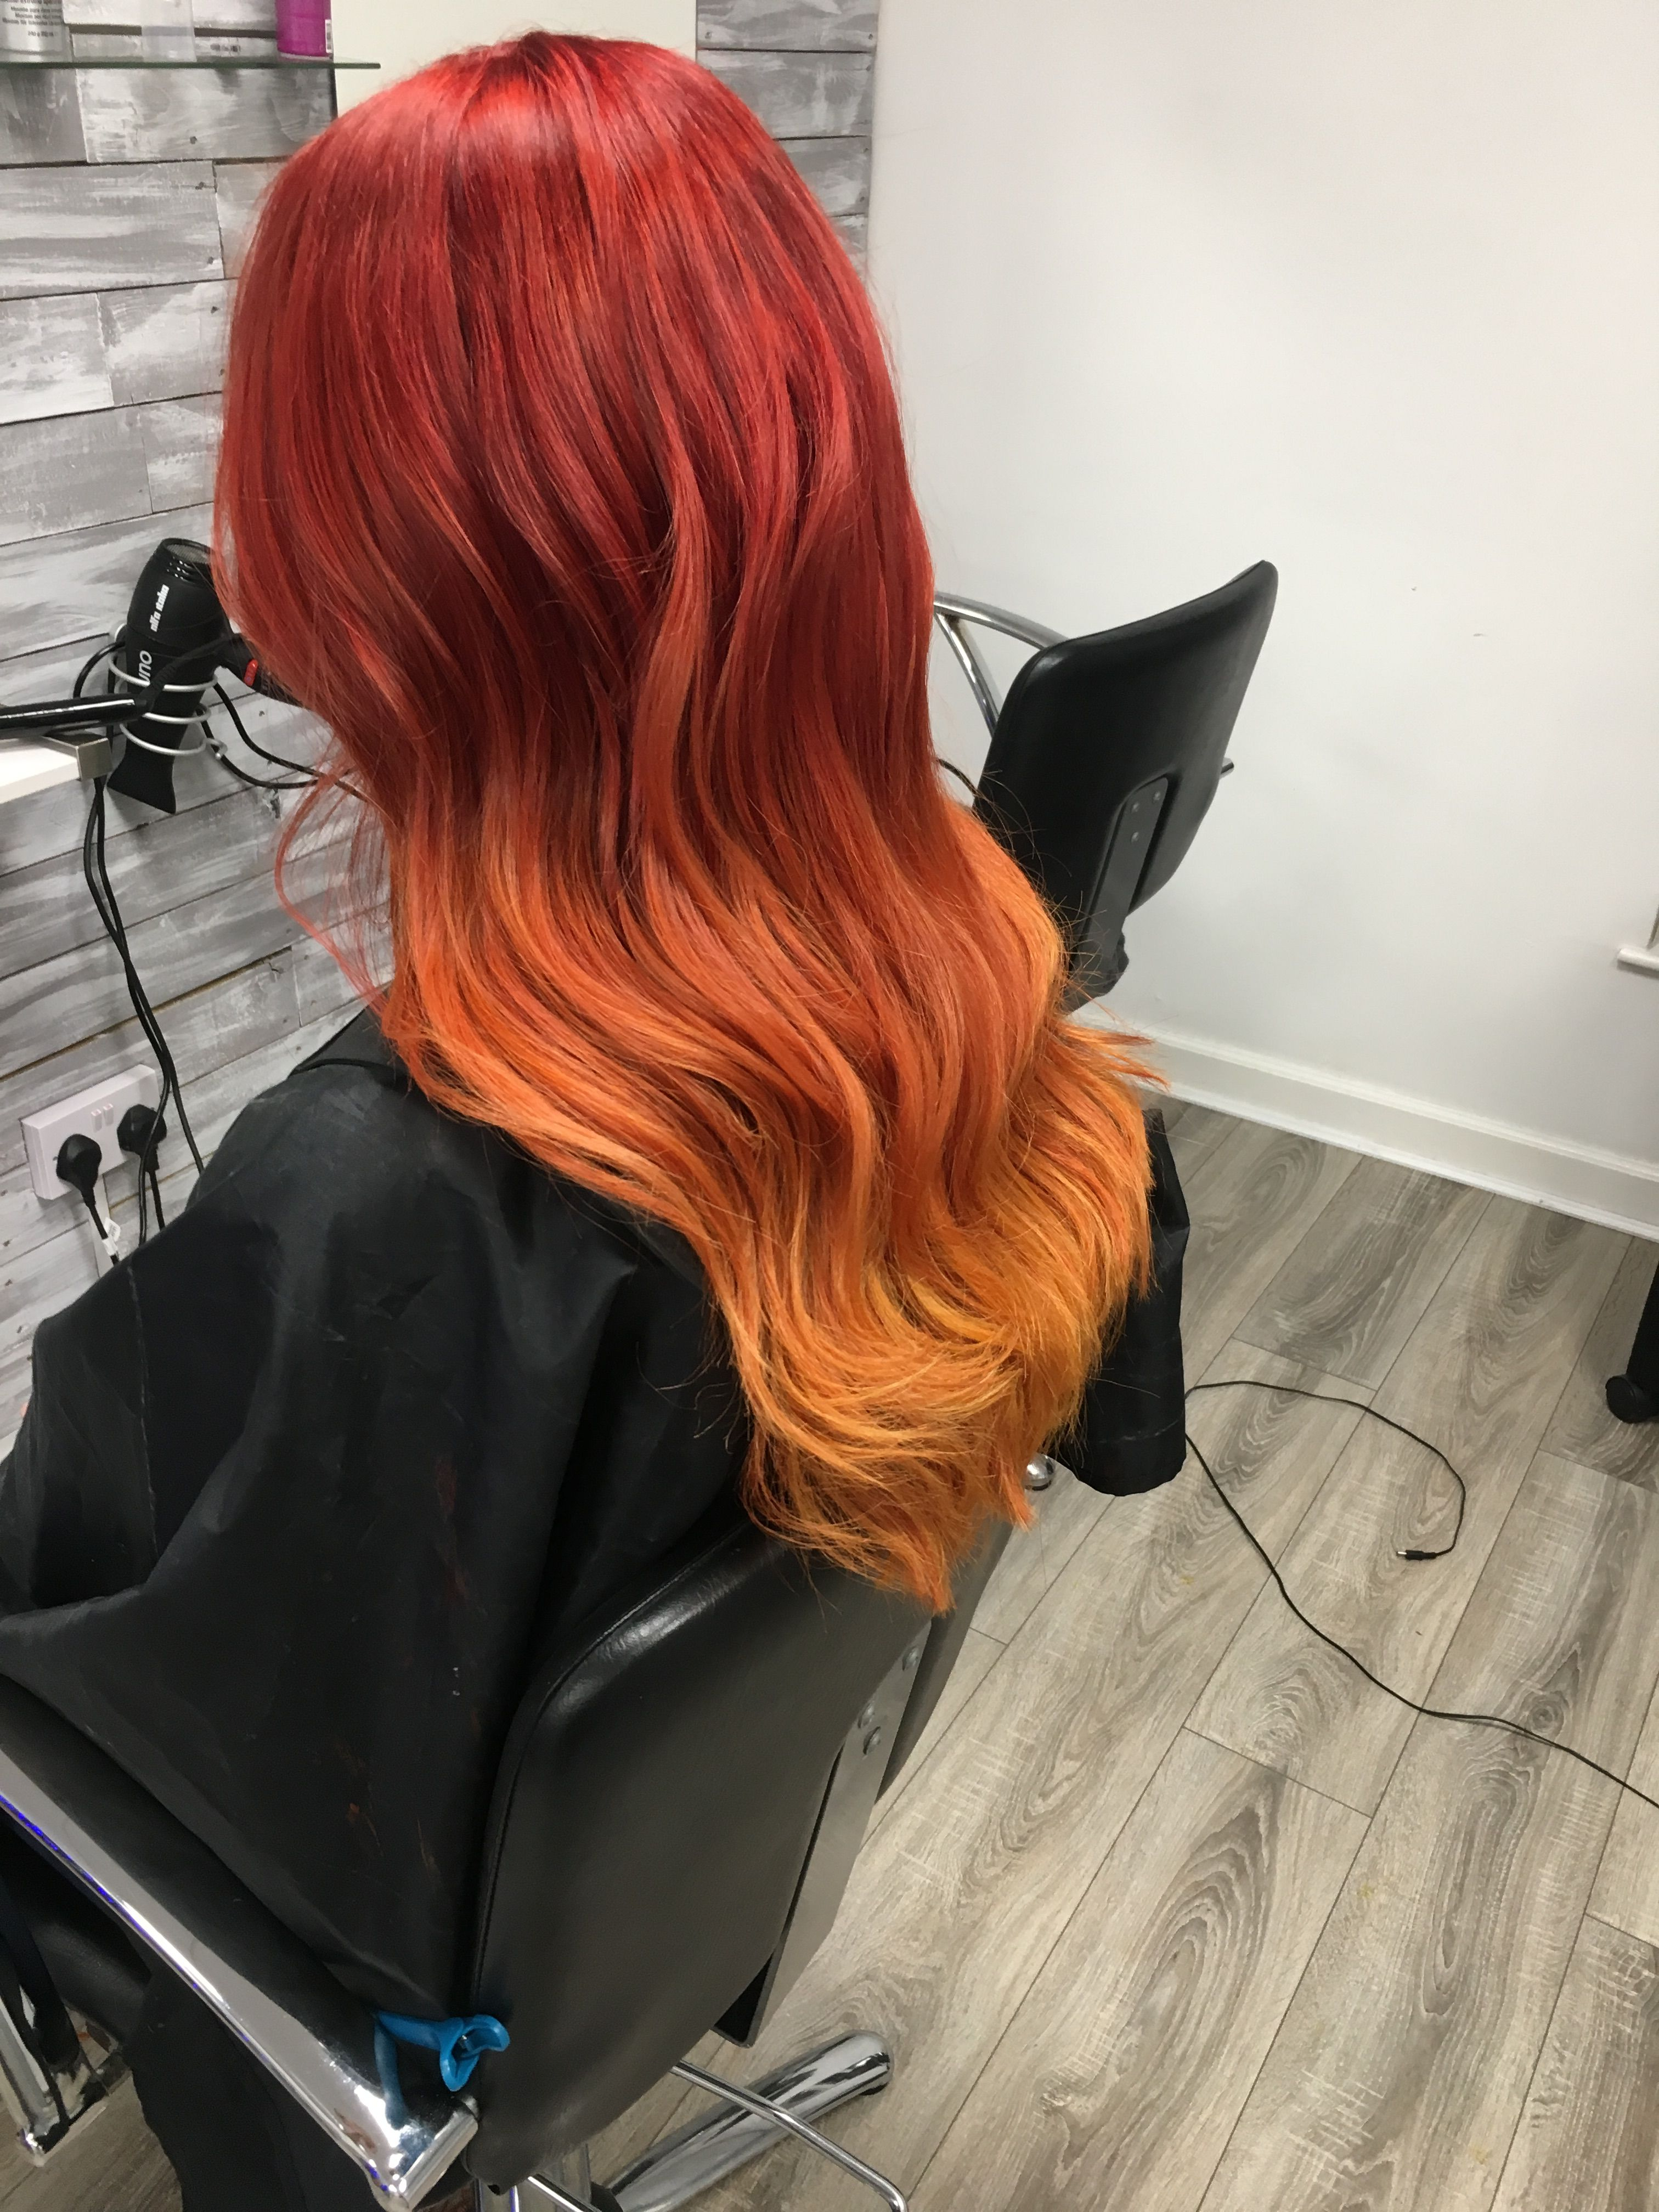 Hairbyadam Based In Macclesfield Im In Love With The End Result